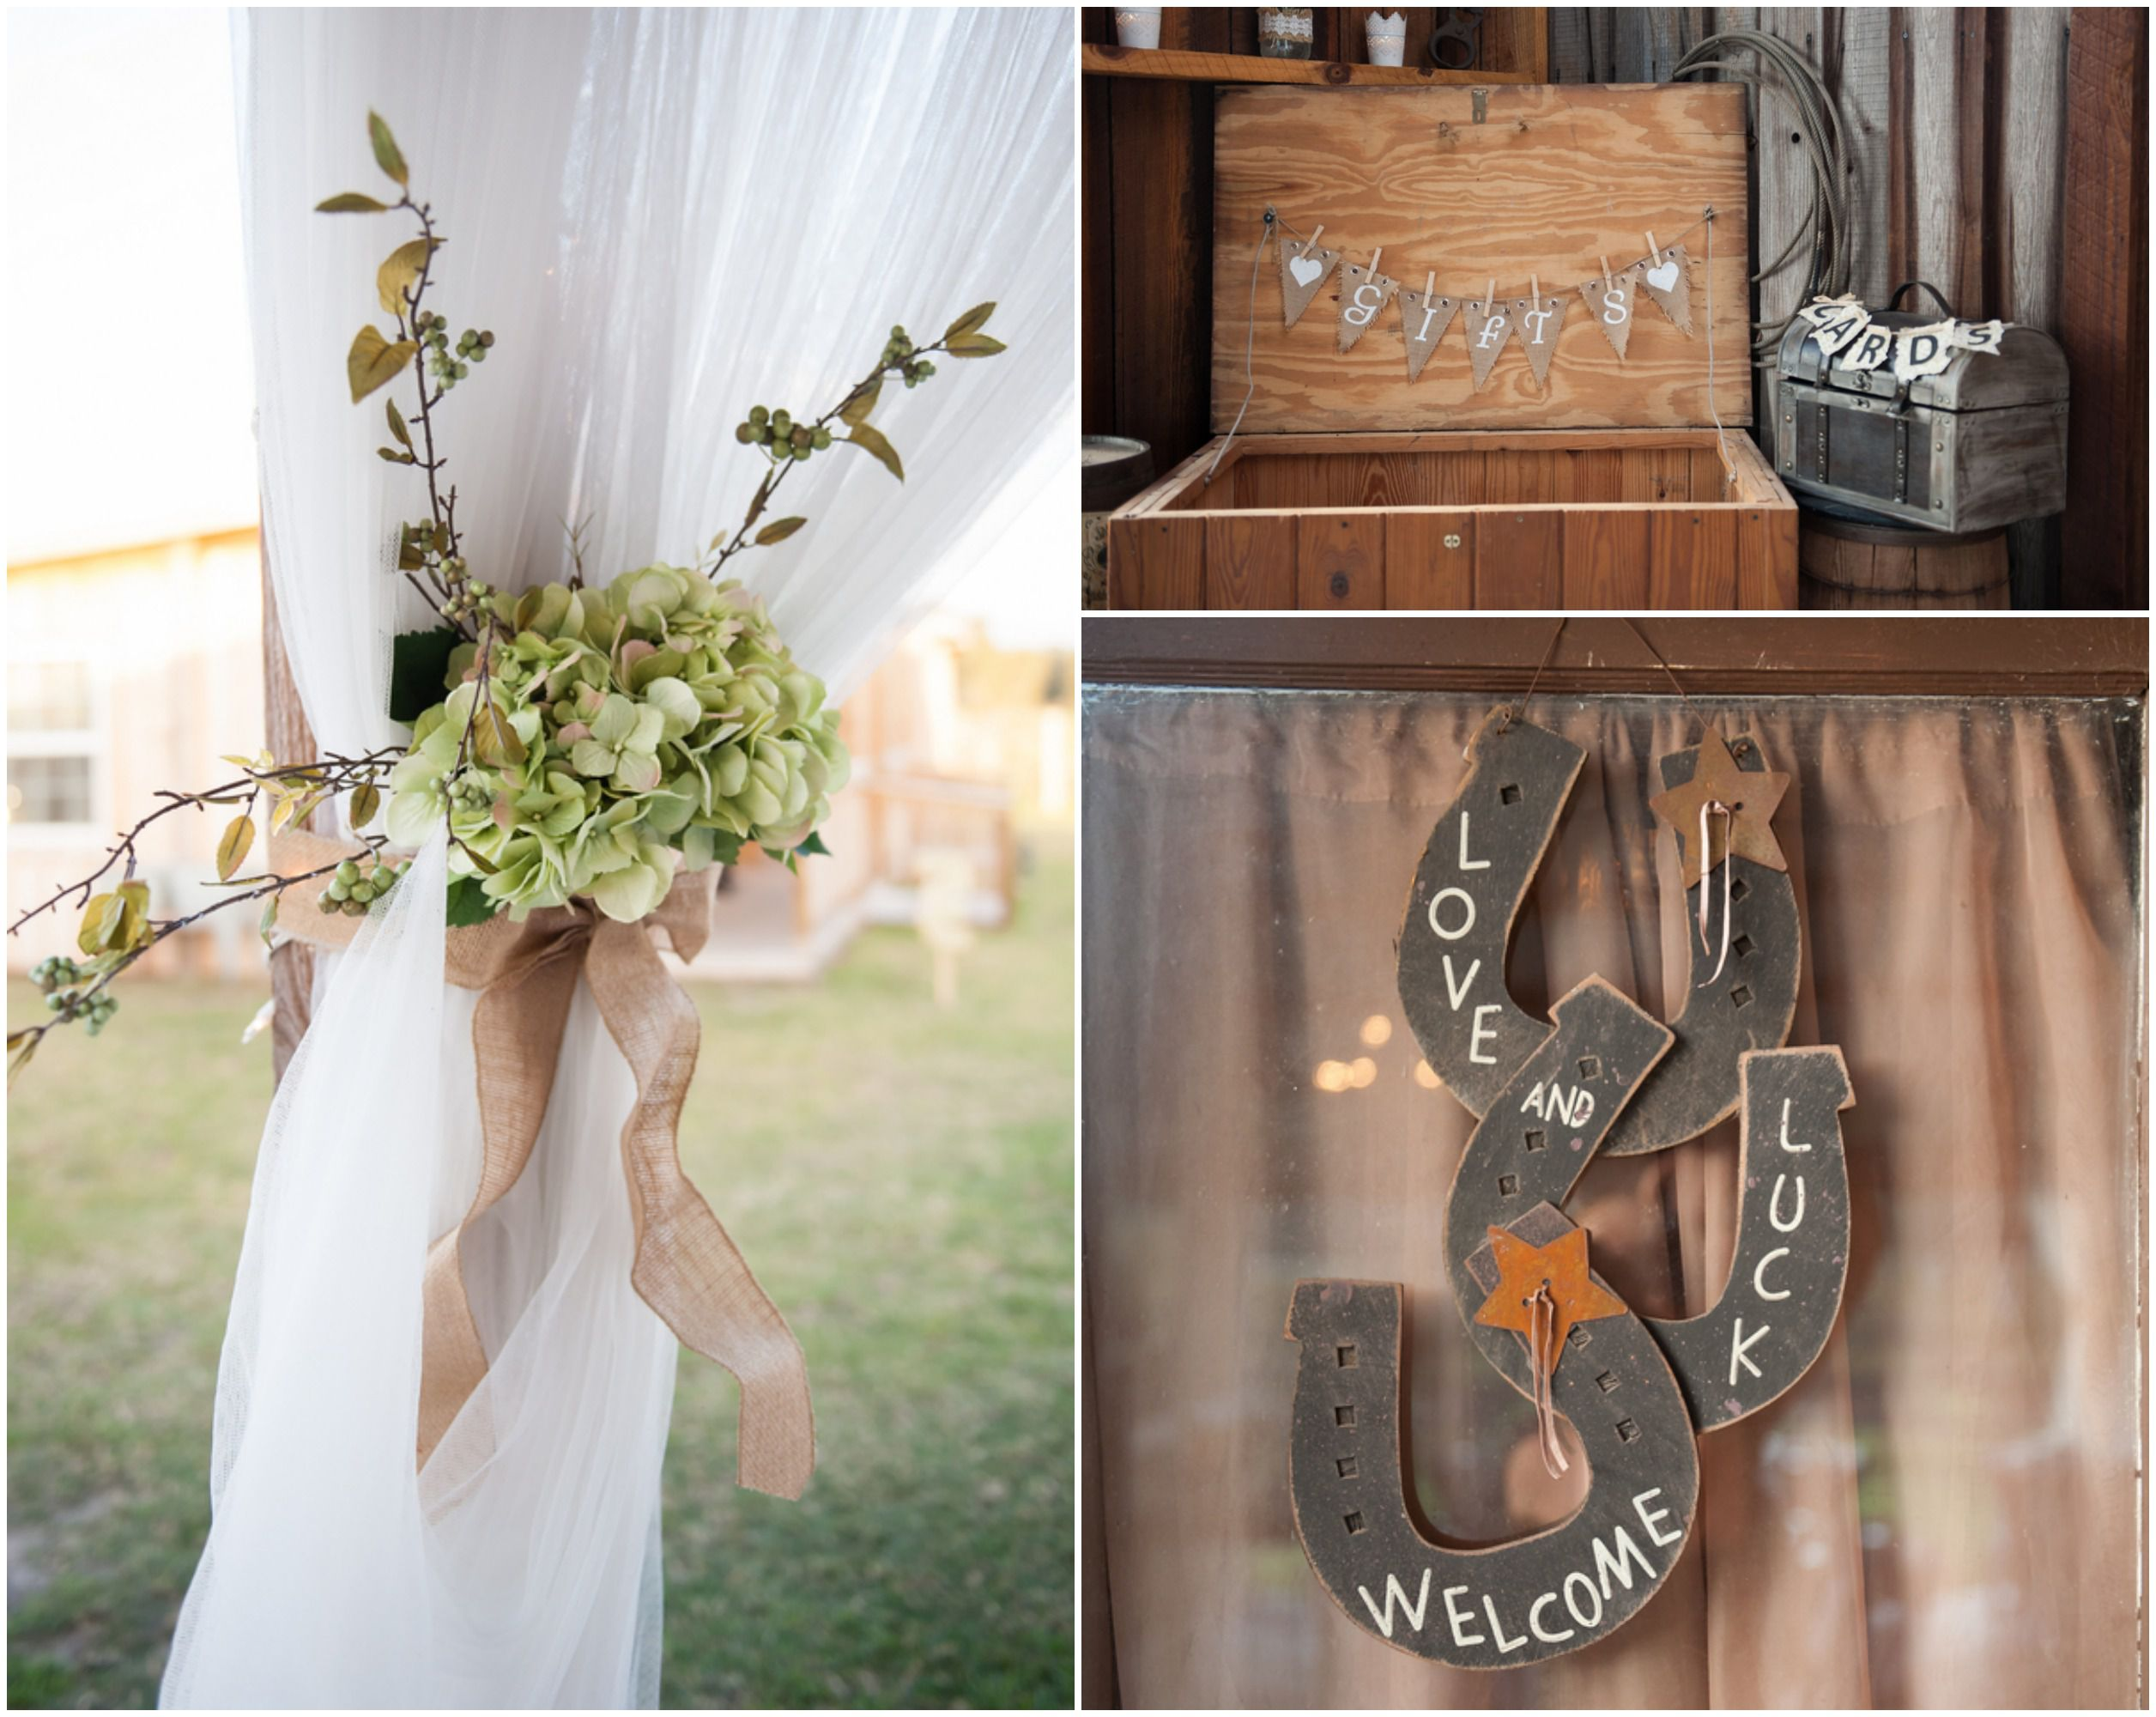 Barn Engagement Party Rustic Wedding Chic